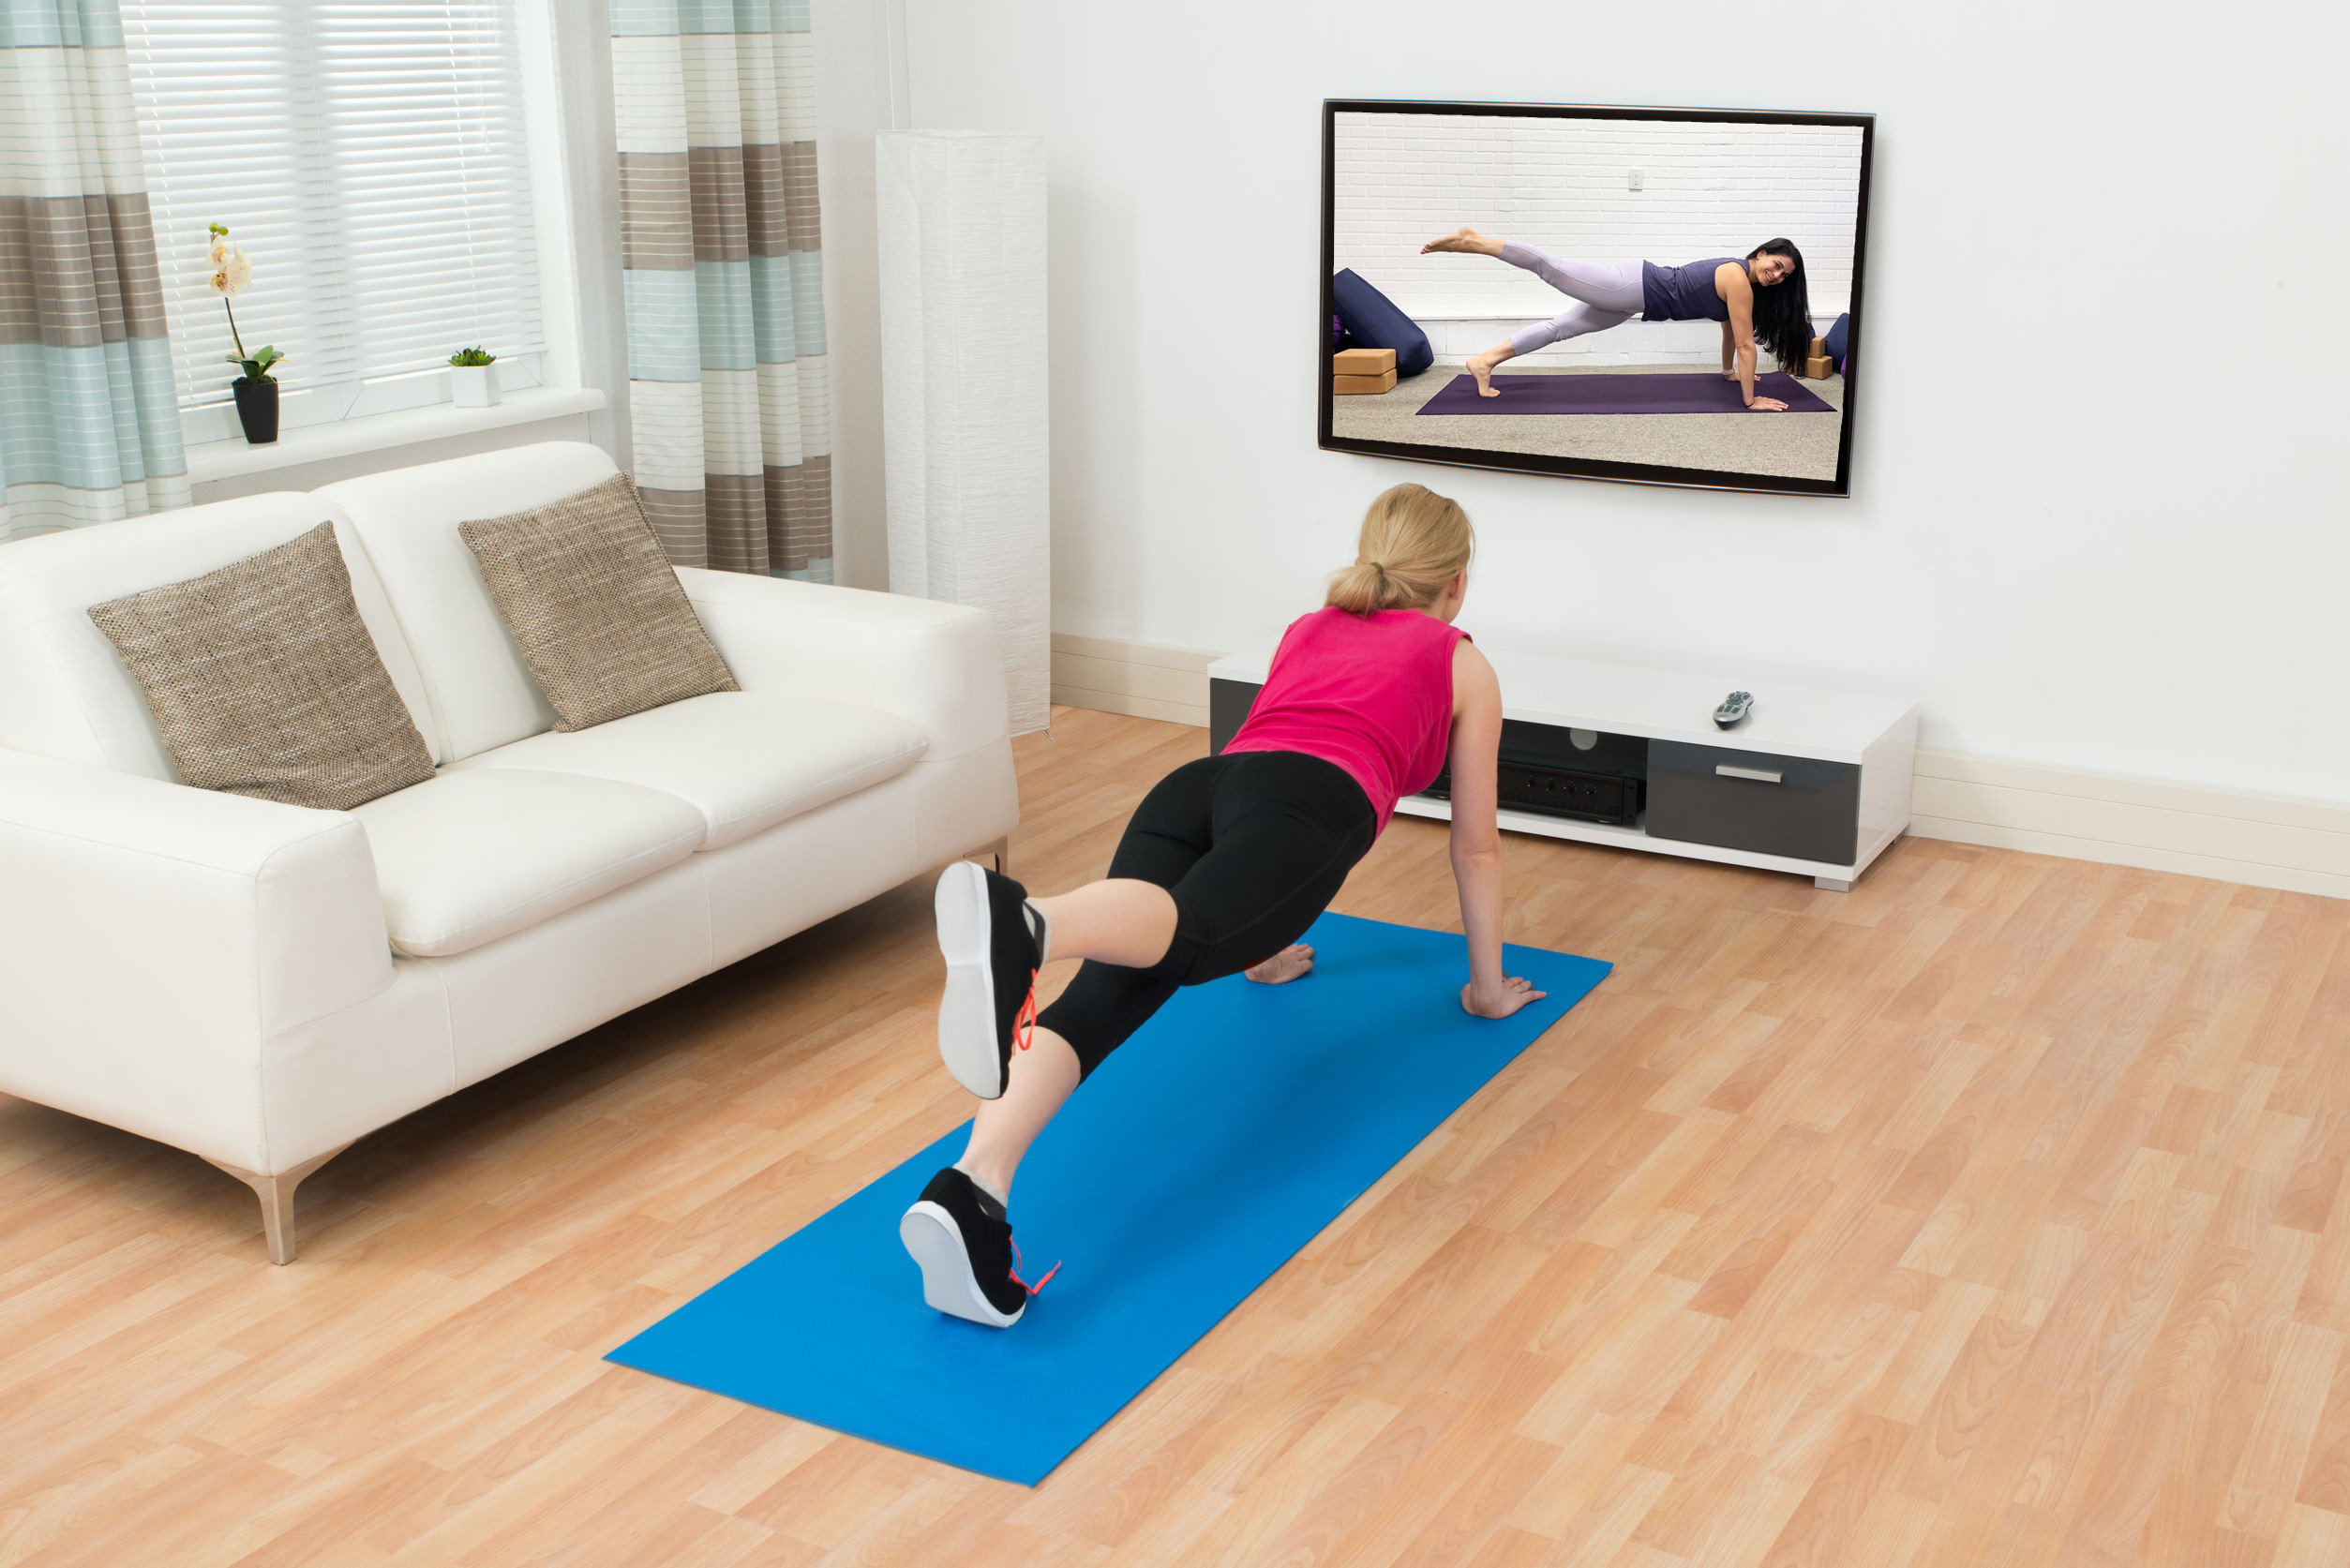 60 minute Online Personal Yoga Session